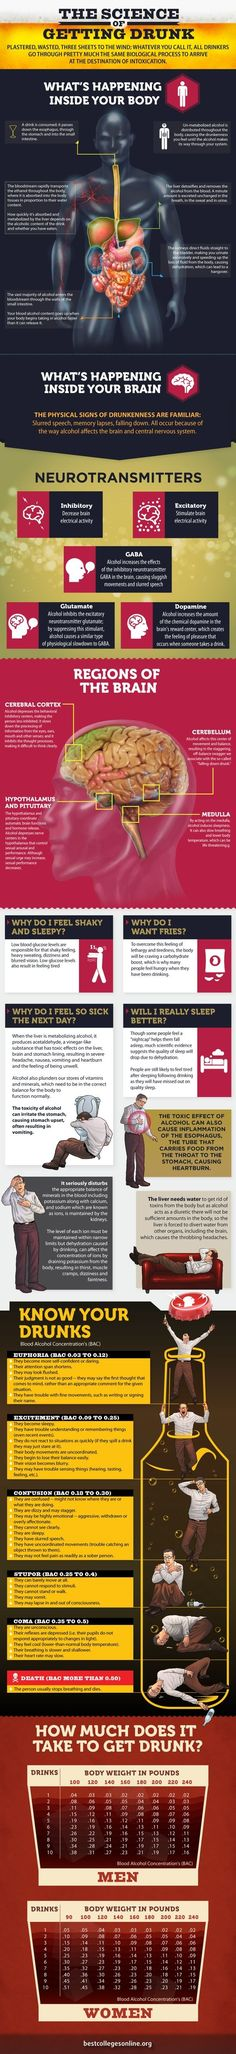 [NEW POST infographic] -> The Science of Getting Drunk [infographic] | Where hundred stories meet http://genfsolution.com/human-growth-hormone-and-weight-loss/